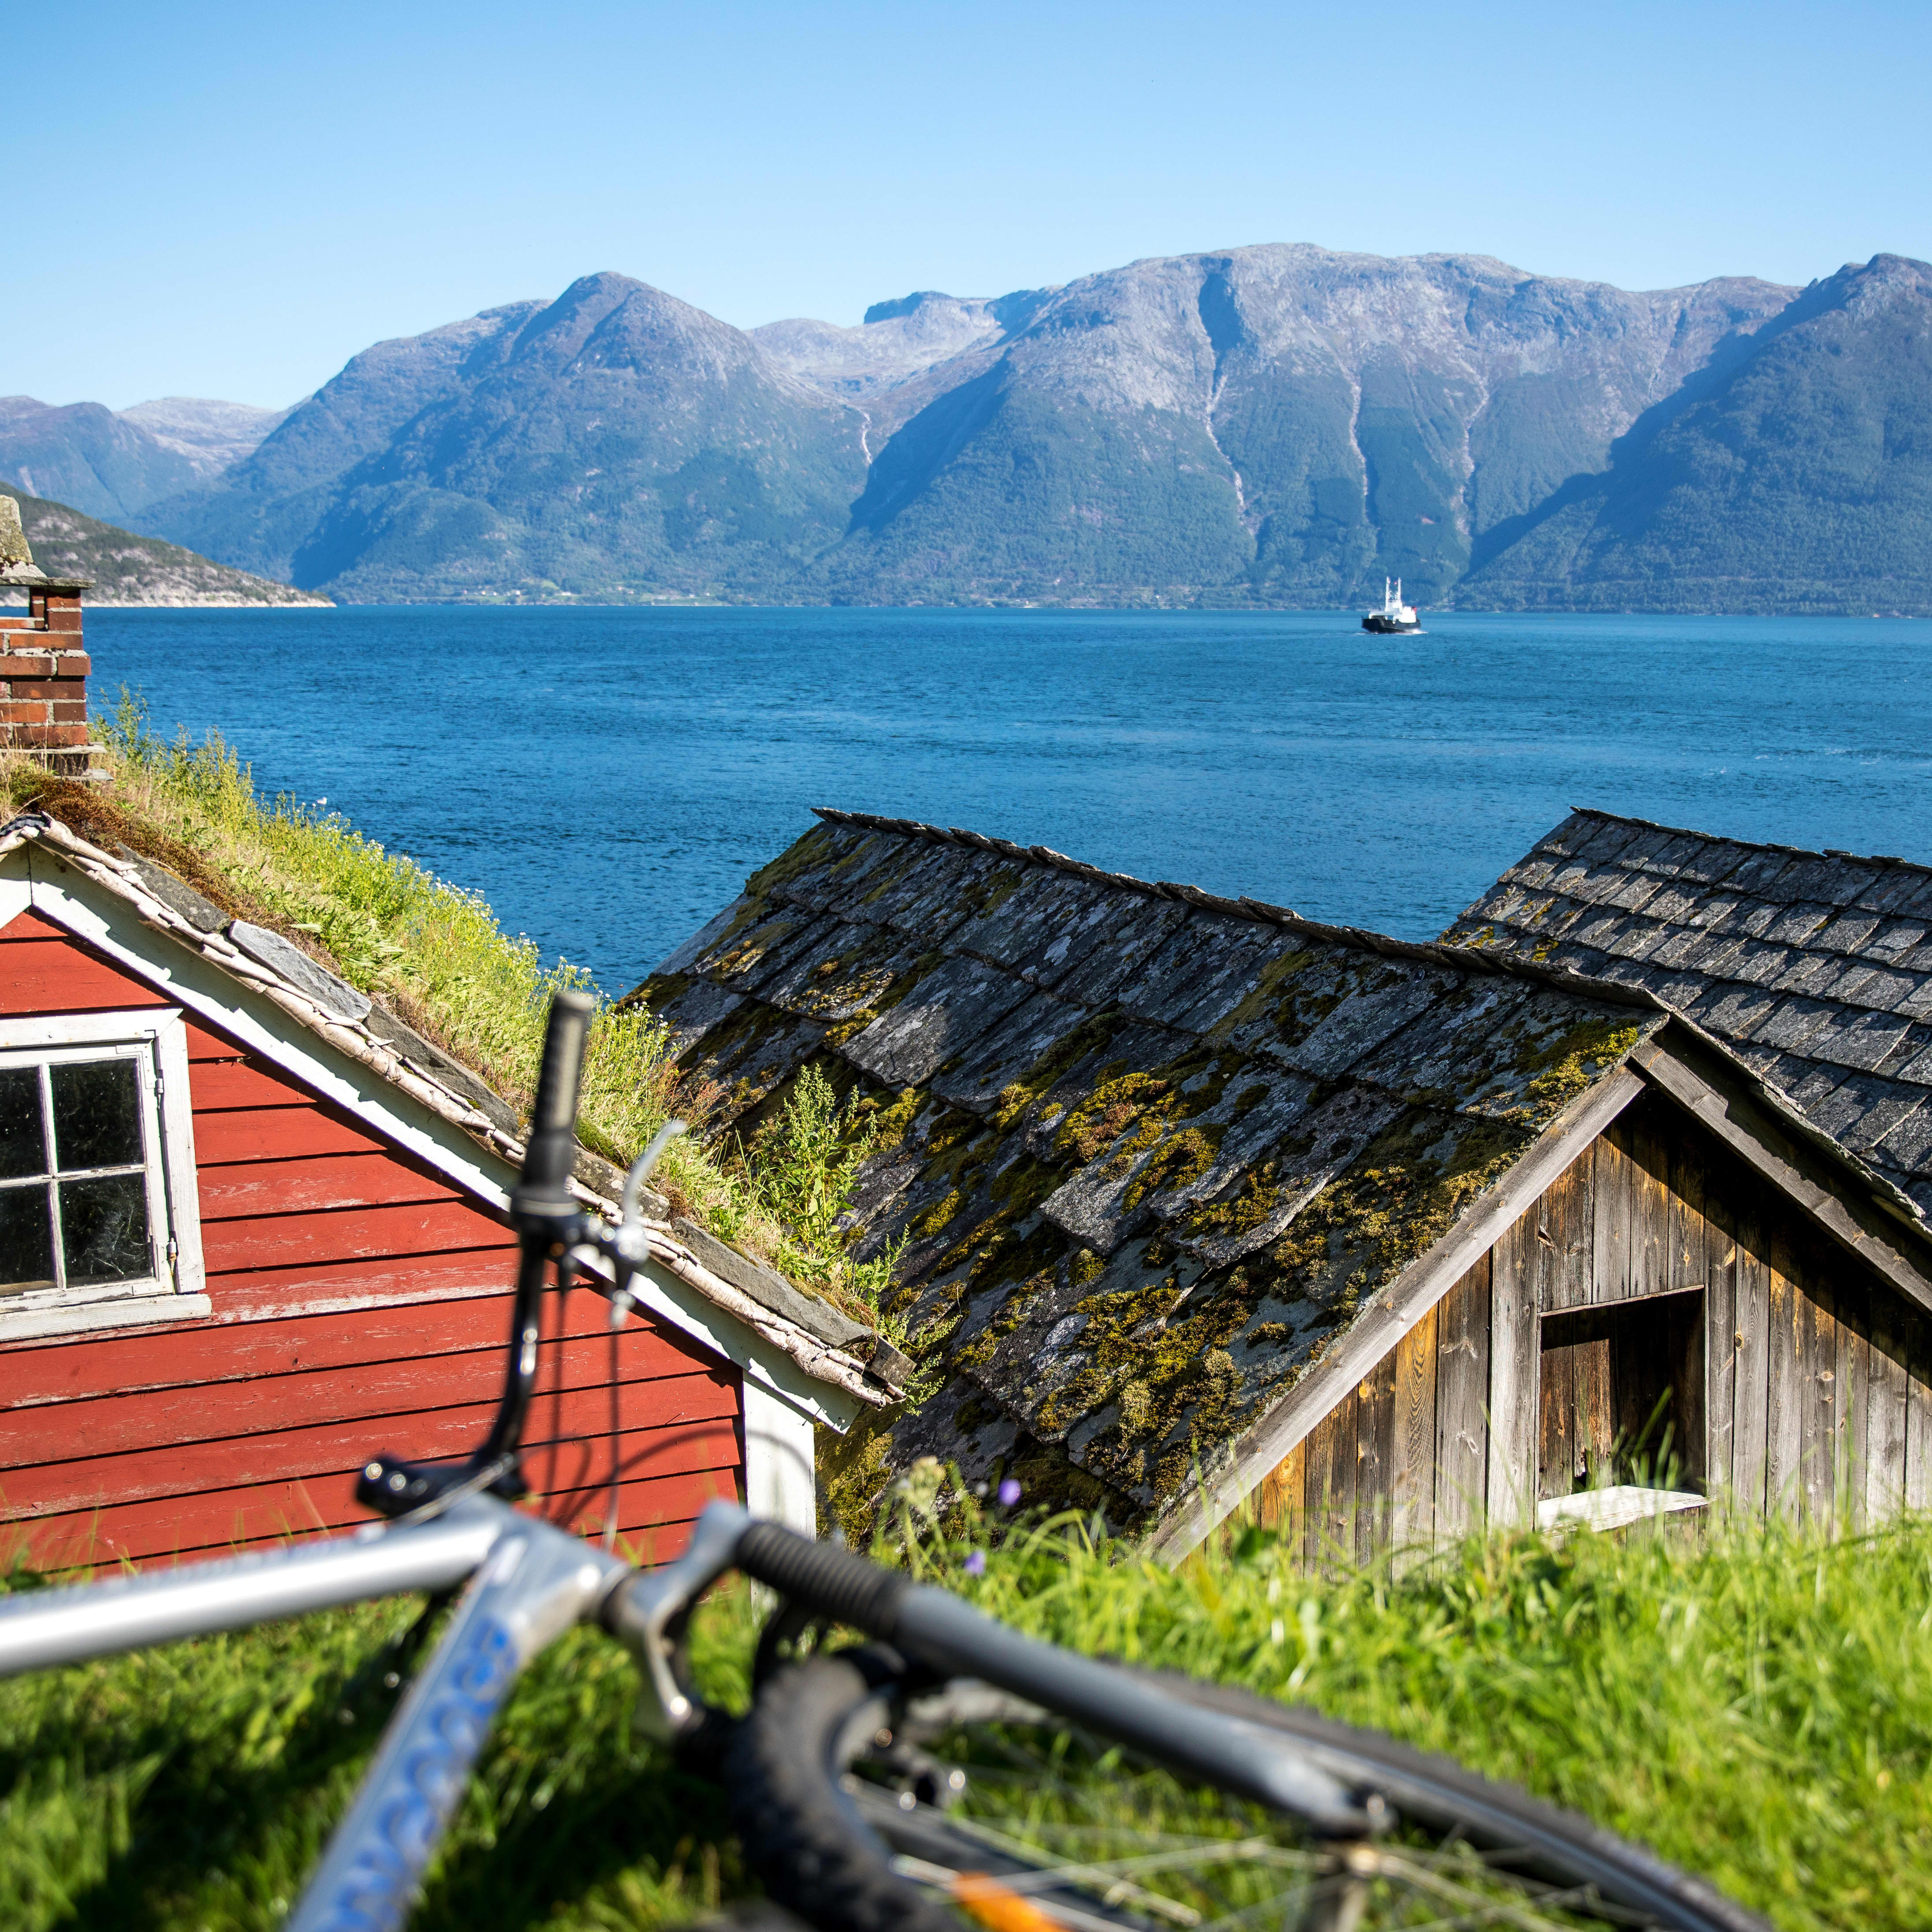 The Hardangerfjord with brown and red wooden houses in the foreground.